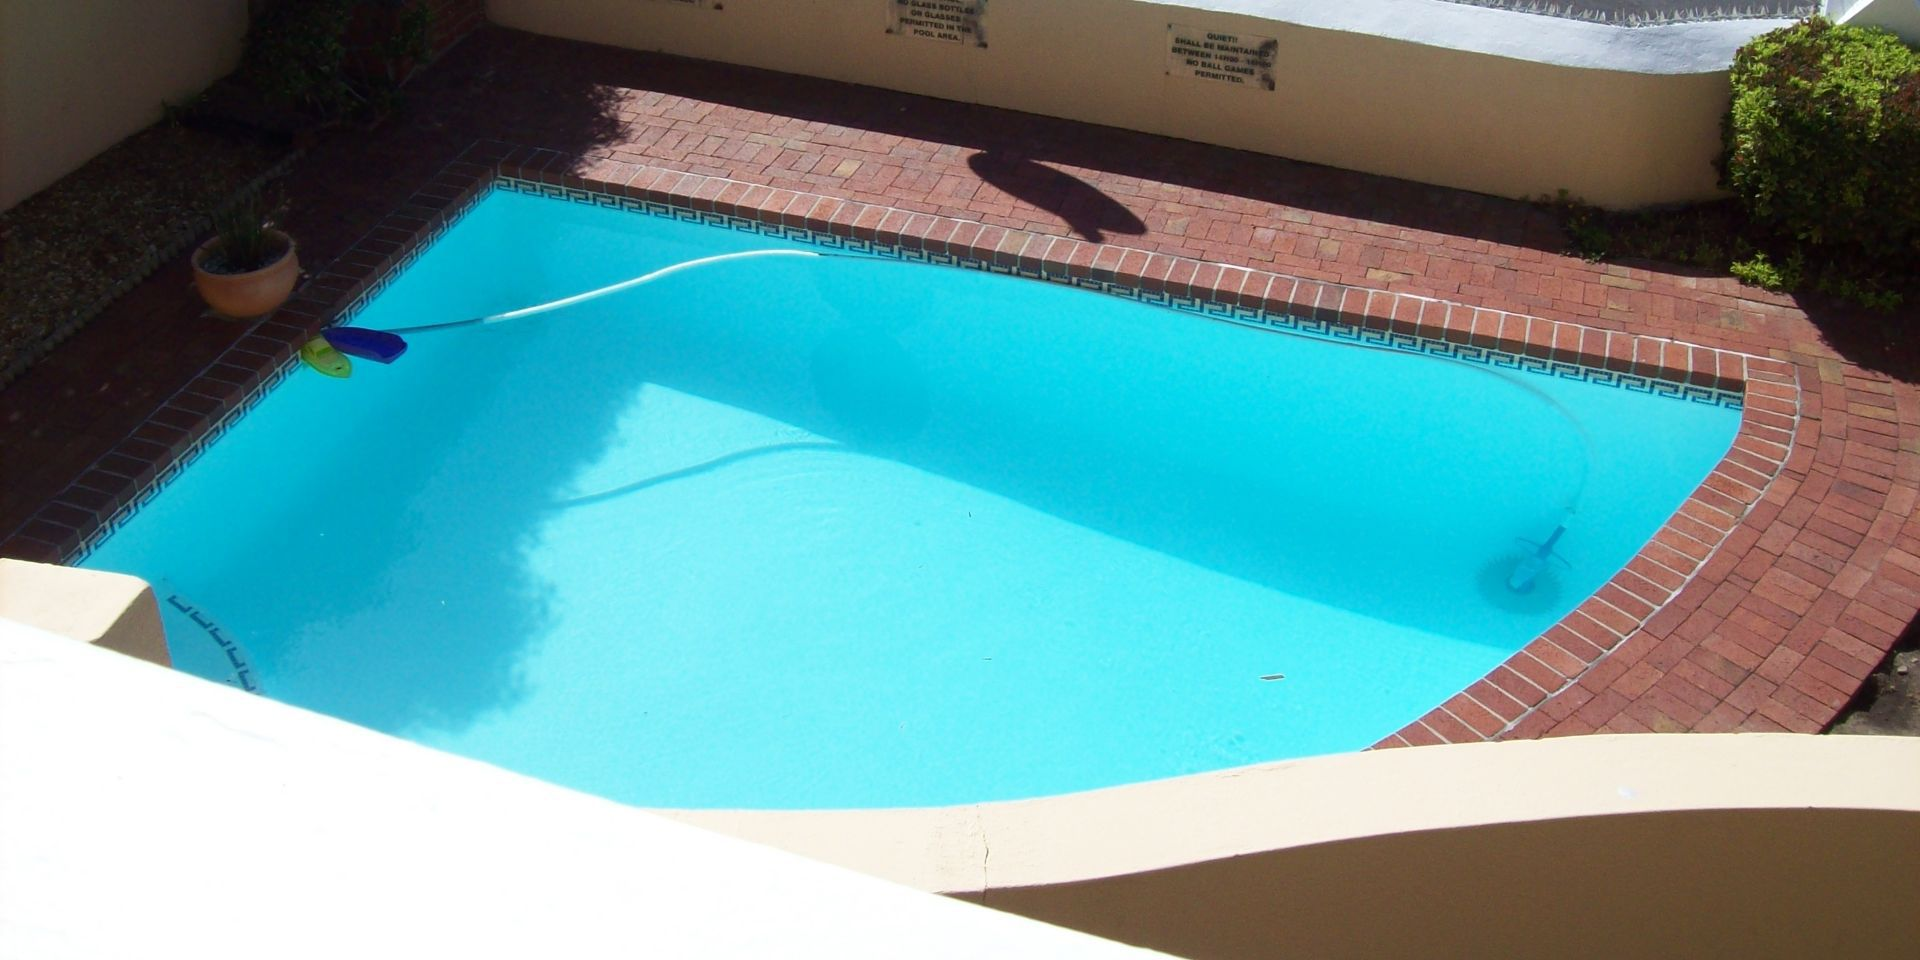 Apartment in St James - pool.jpg